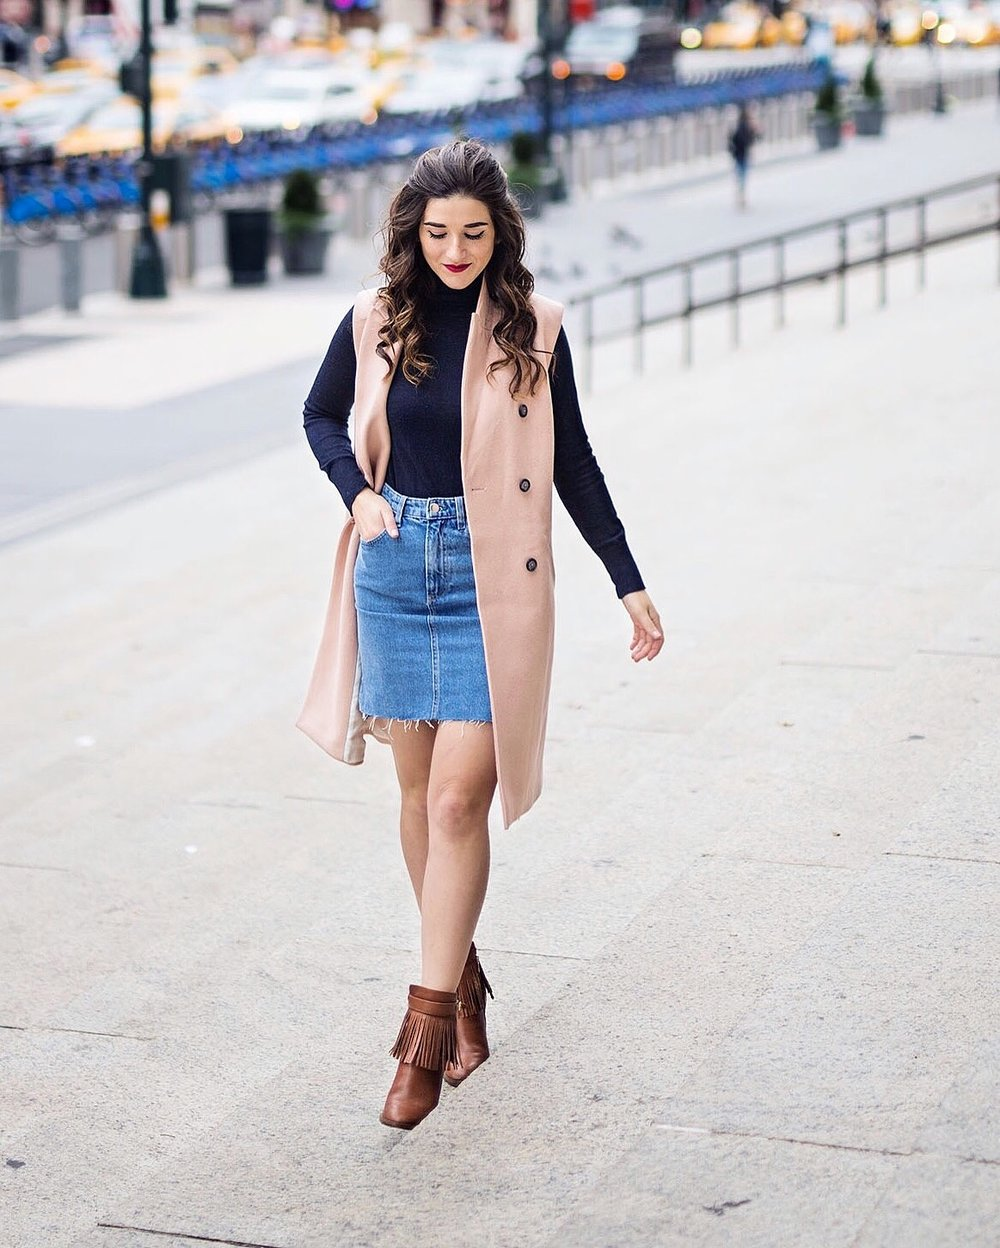 Blush Pink Vest Navy Turtleneck Banana Republic Louboutins & Love Fashion Blog Esther Santer NYC Street Style Blogger Outfit OOTD Trendy Fringe Booties Denim Mini Skirt Hair Model Photoshoot Girl Women Lifestyle Color Fall Ivanka Trump Booties Shoes.jpg